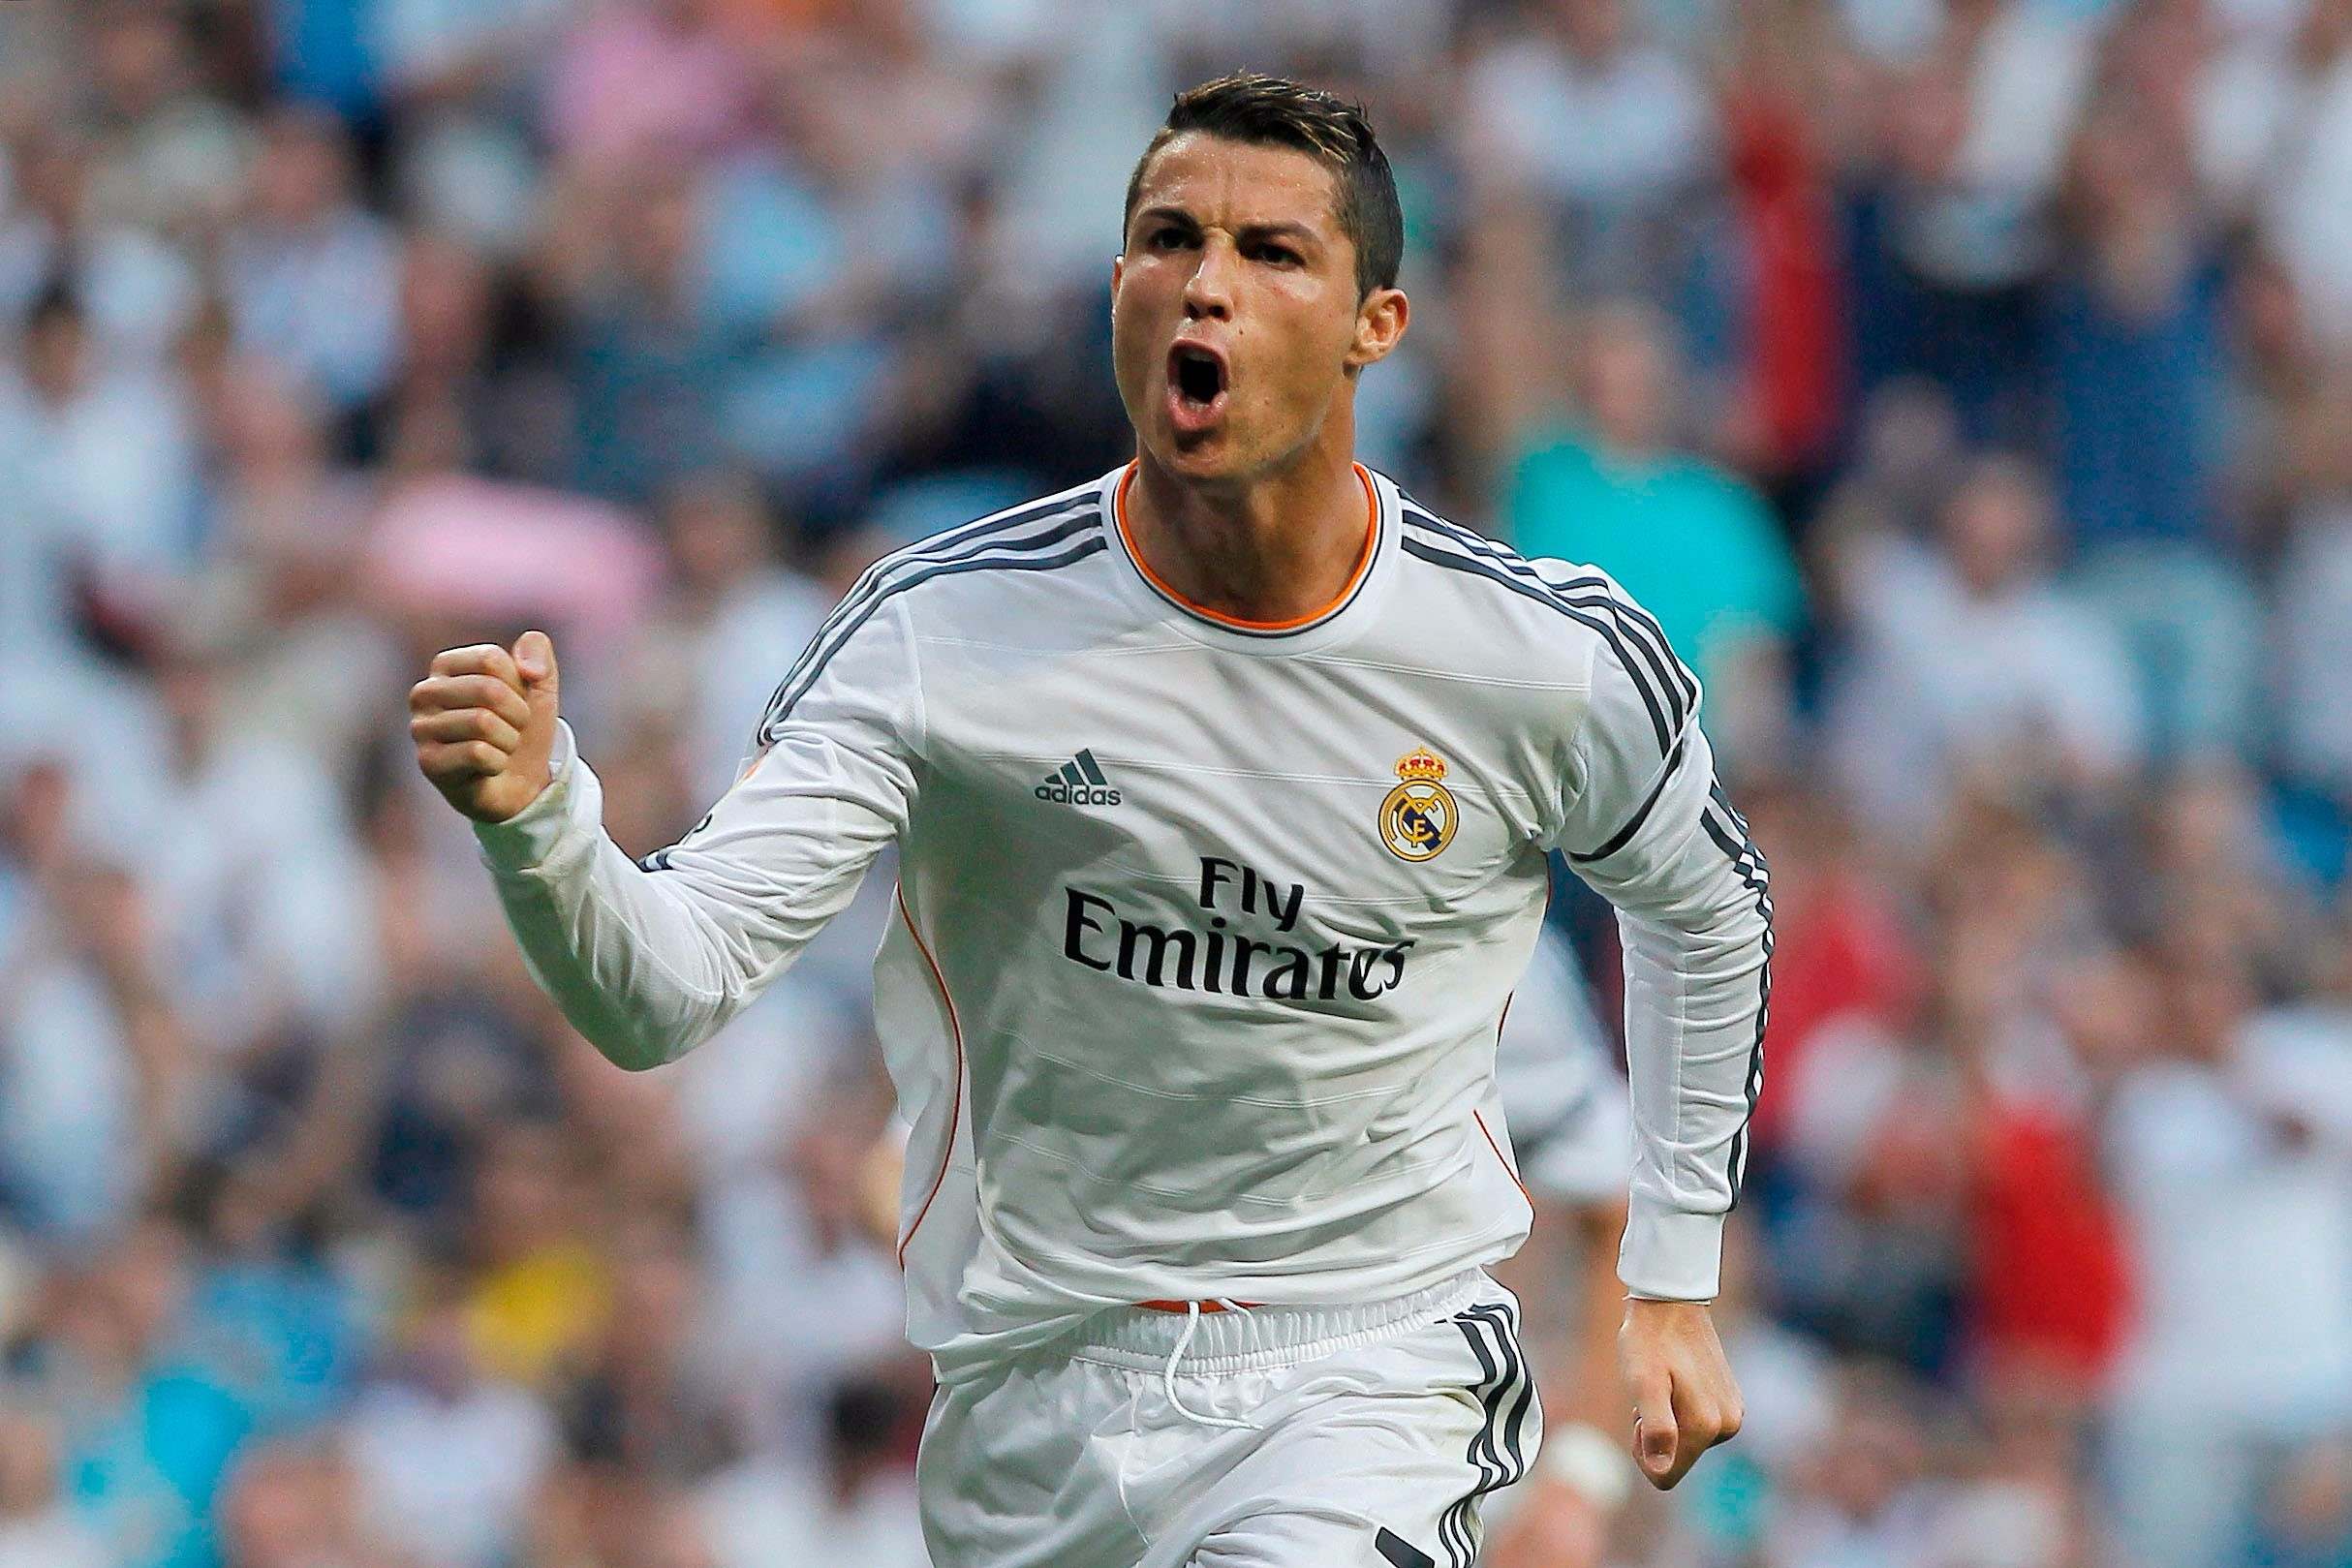 CR7 lefts Real Madrid and goes to France